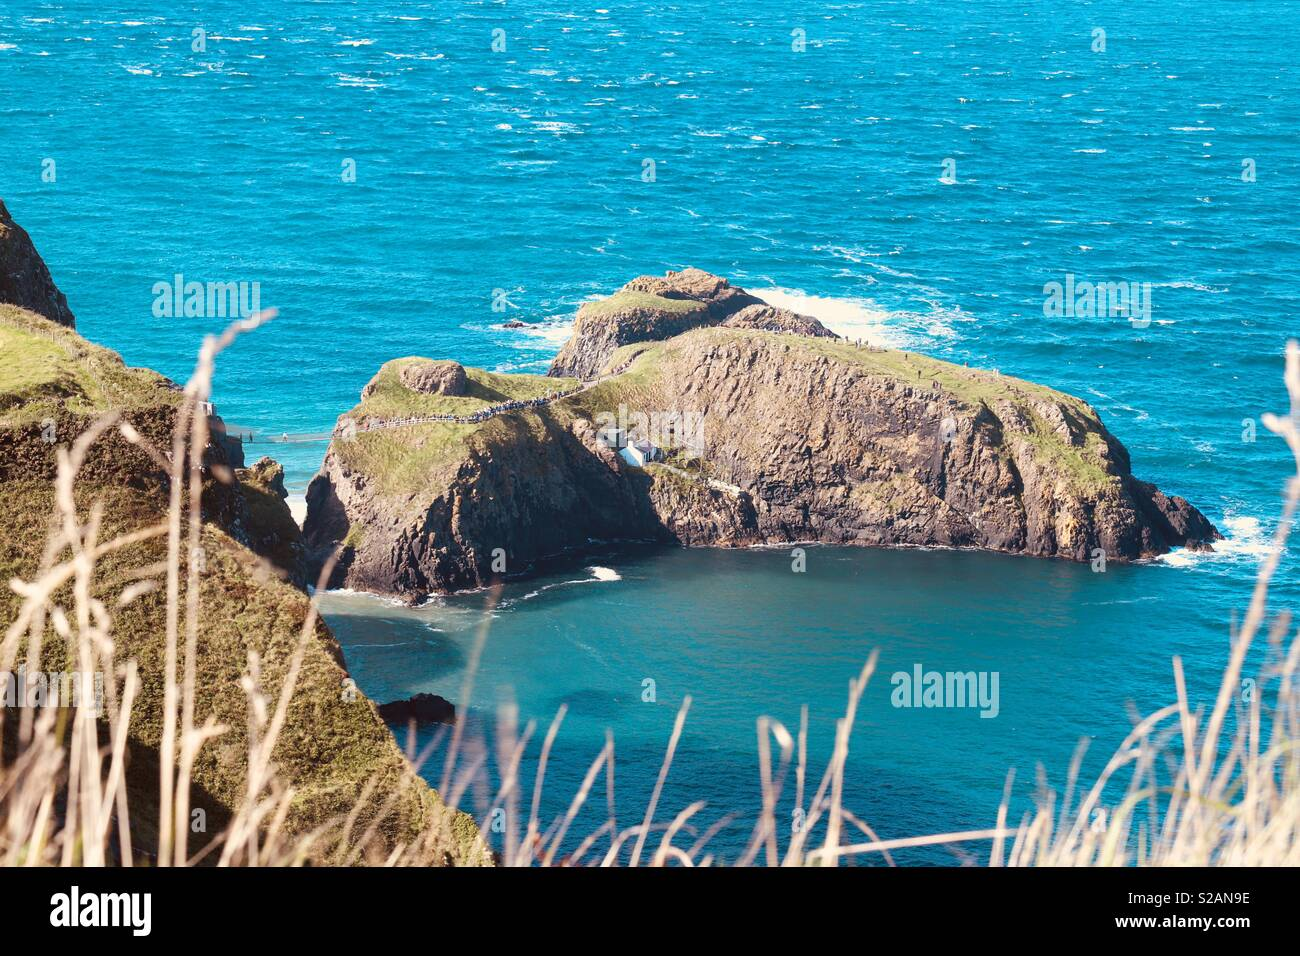 Carrick-a-Rede Rope Bridge spanning the dizzy gap between the mainland and a small island near Ballycastle Co. Antrim, Northern Ireland. - Stock Image